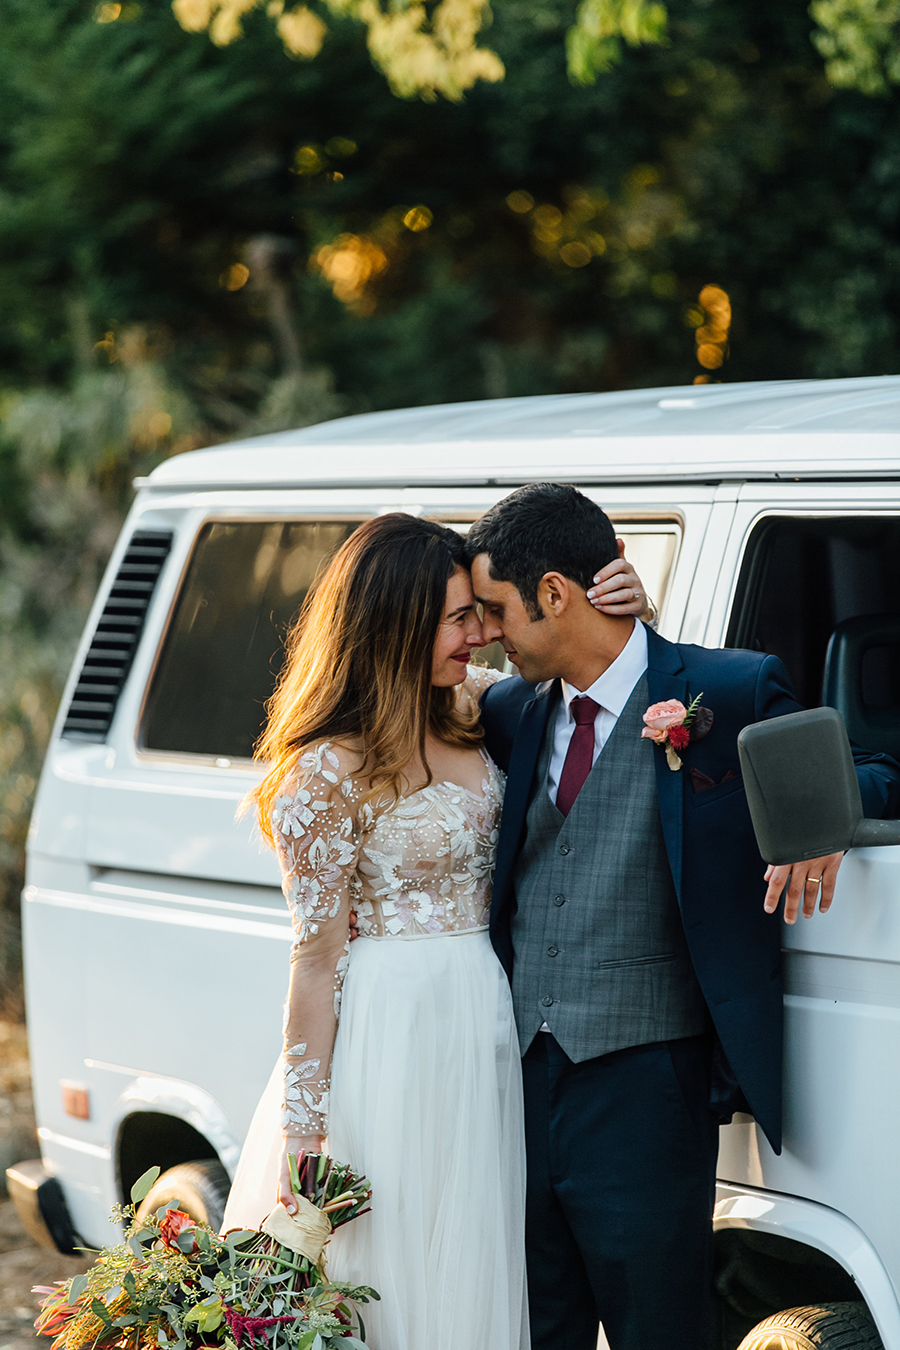 Bohemian Glam Wedding Day in California with the Hayley Paige Remmington Dress from Haute Bride